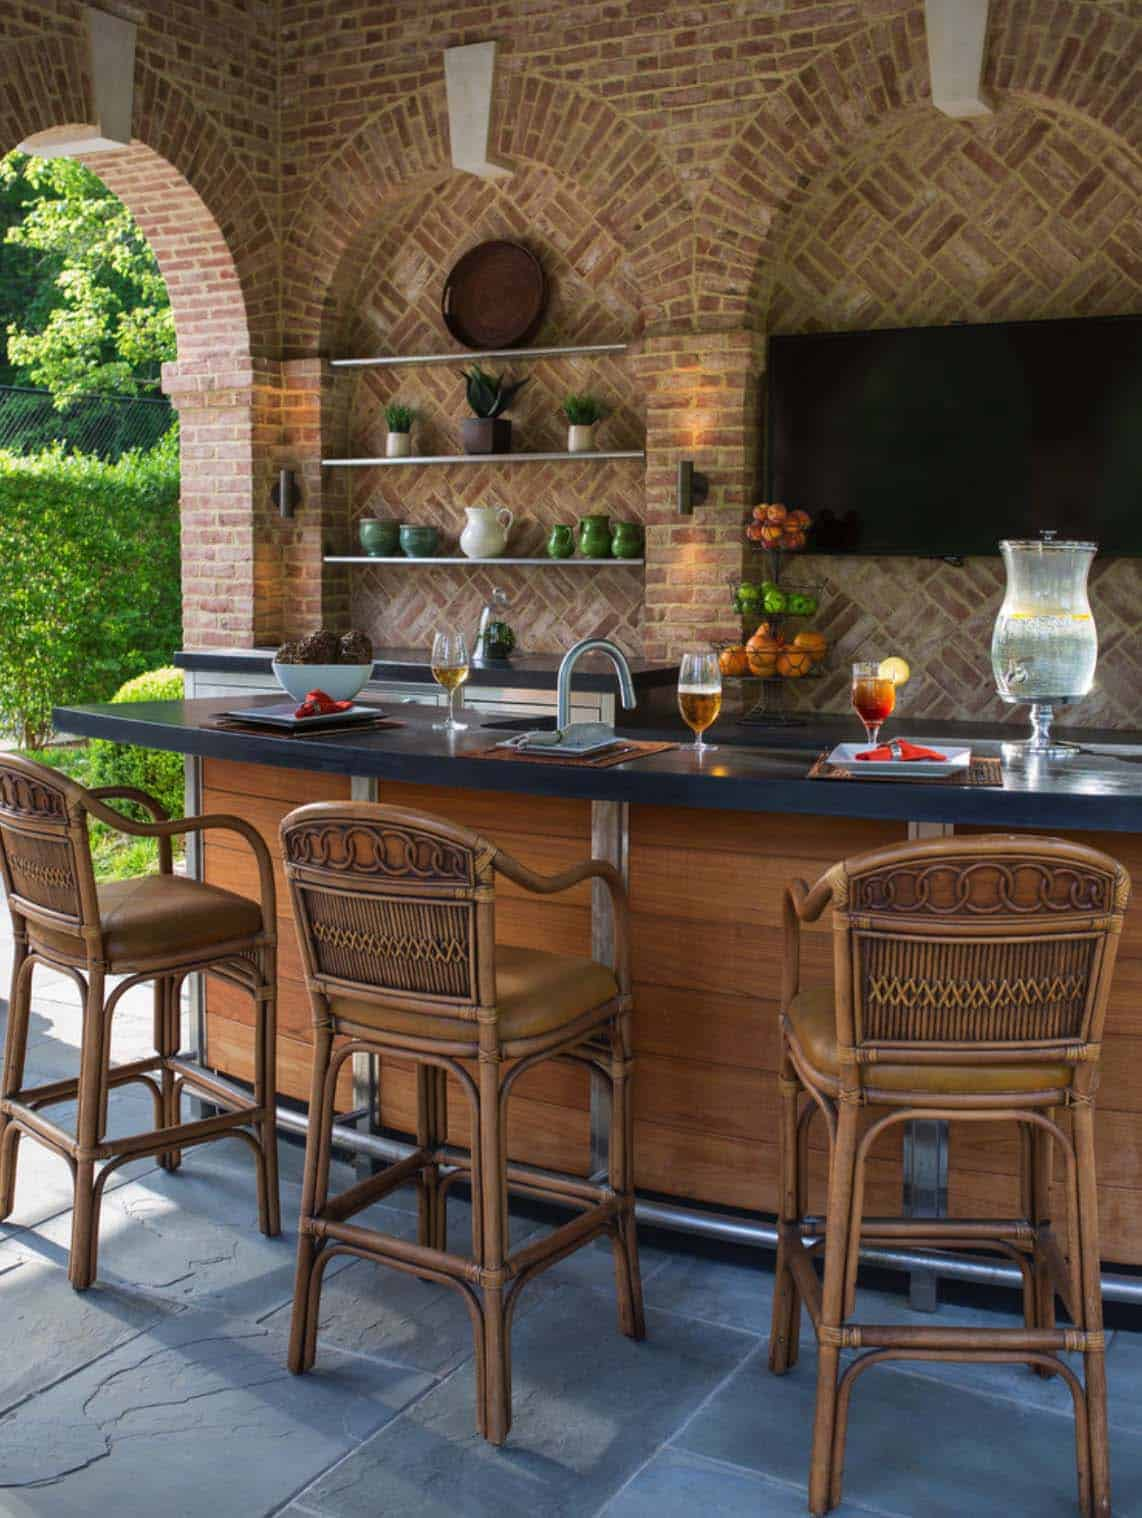 Outdoor Kitchens-Bars Entertaining-13-1 Kindesign.jpg